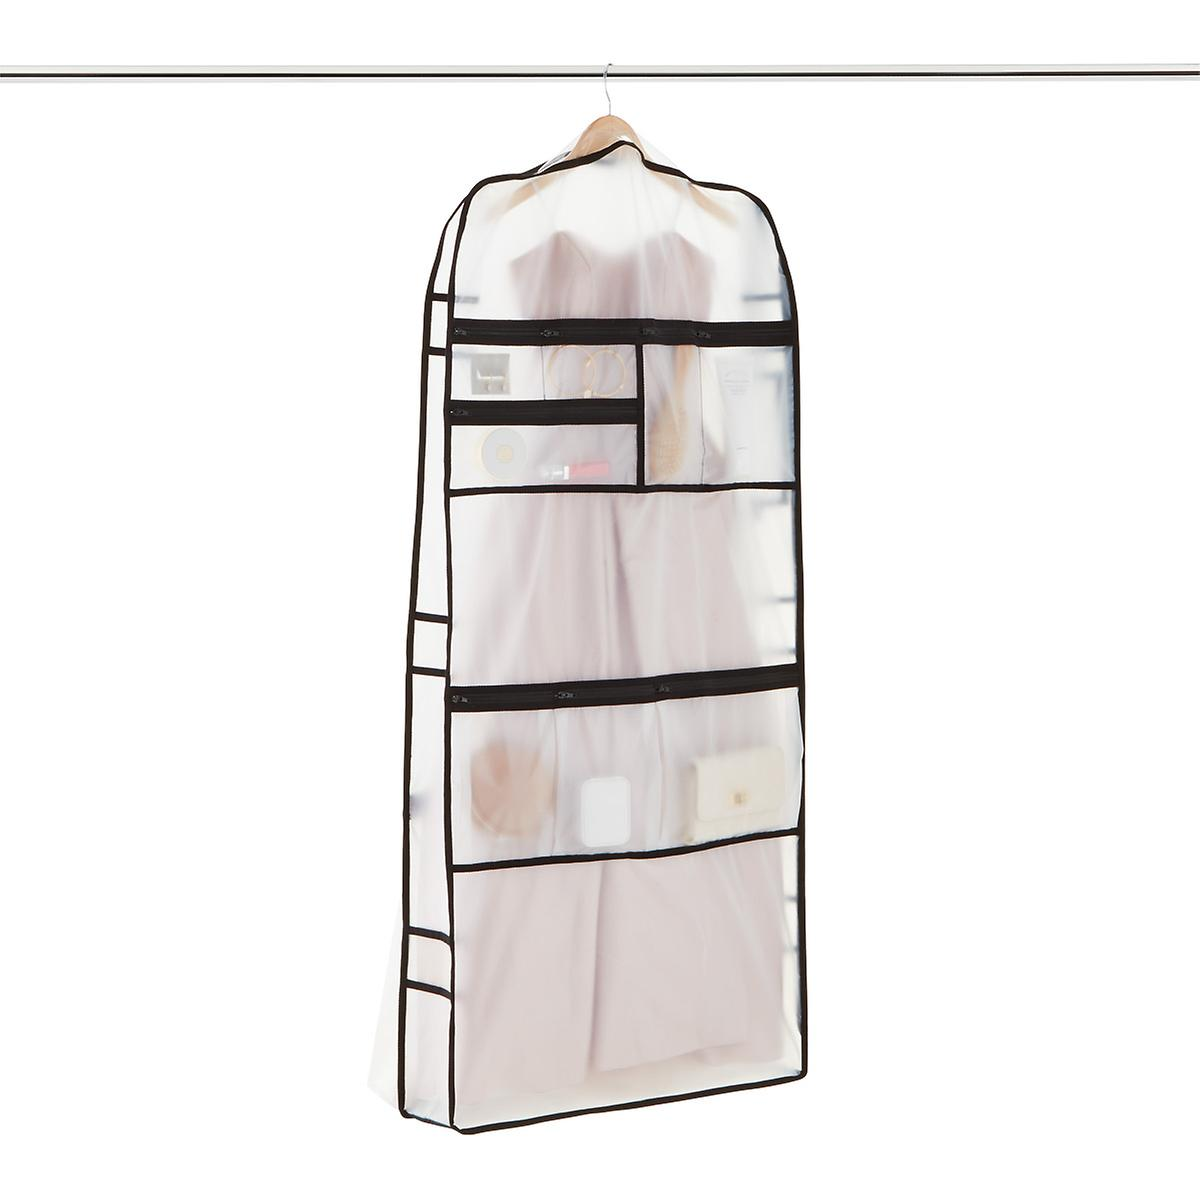 SetReady Everyday Garment Bag